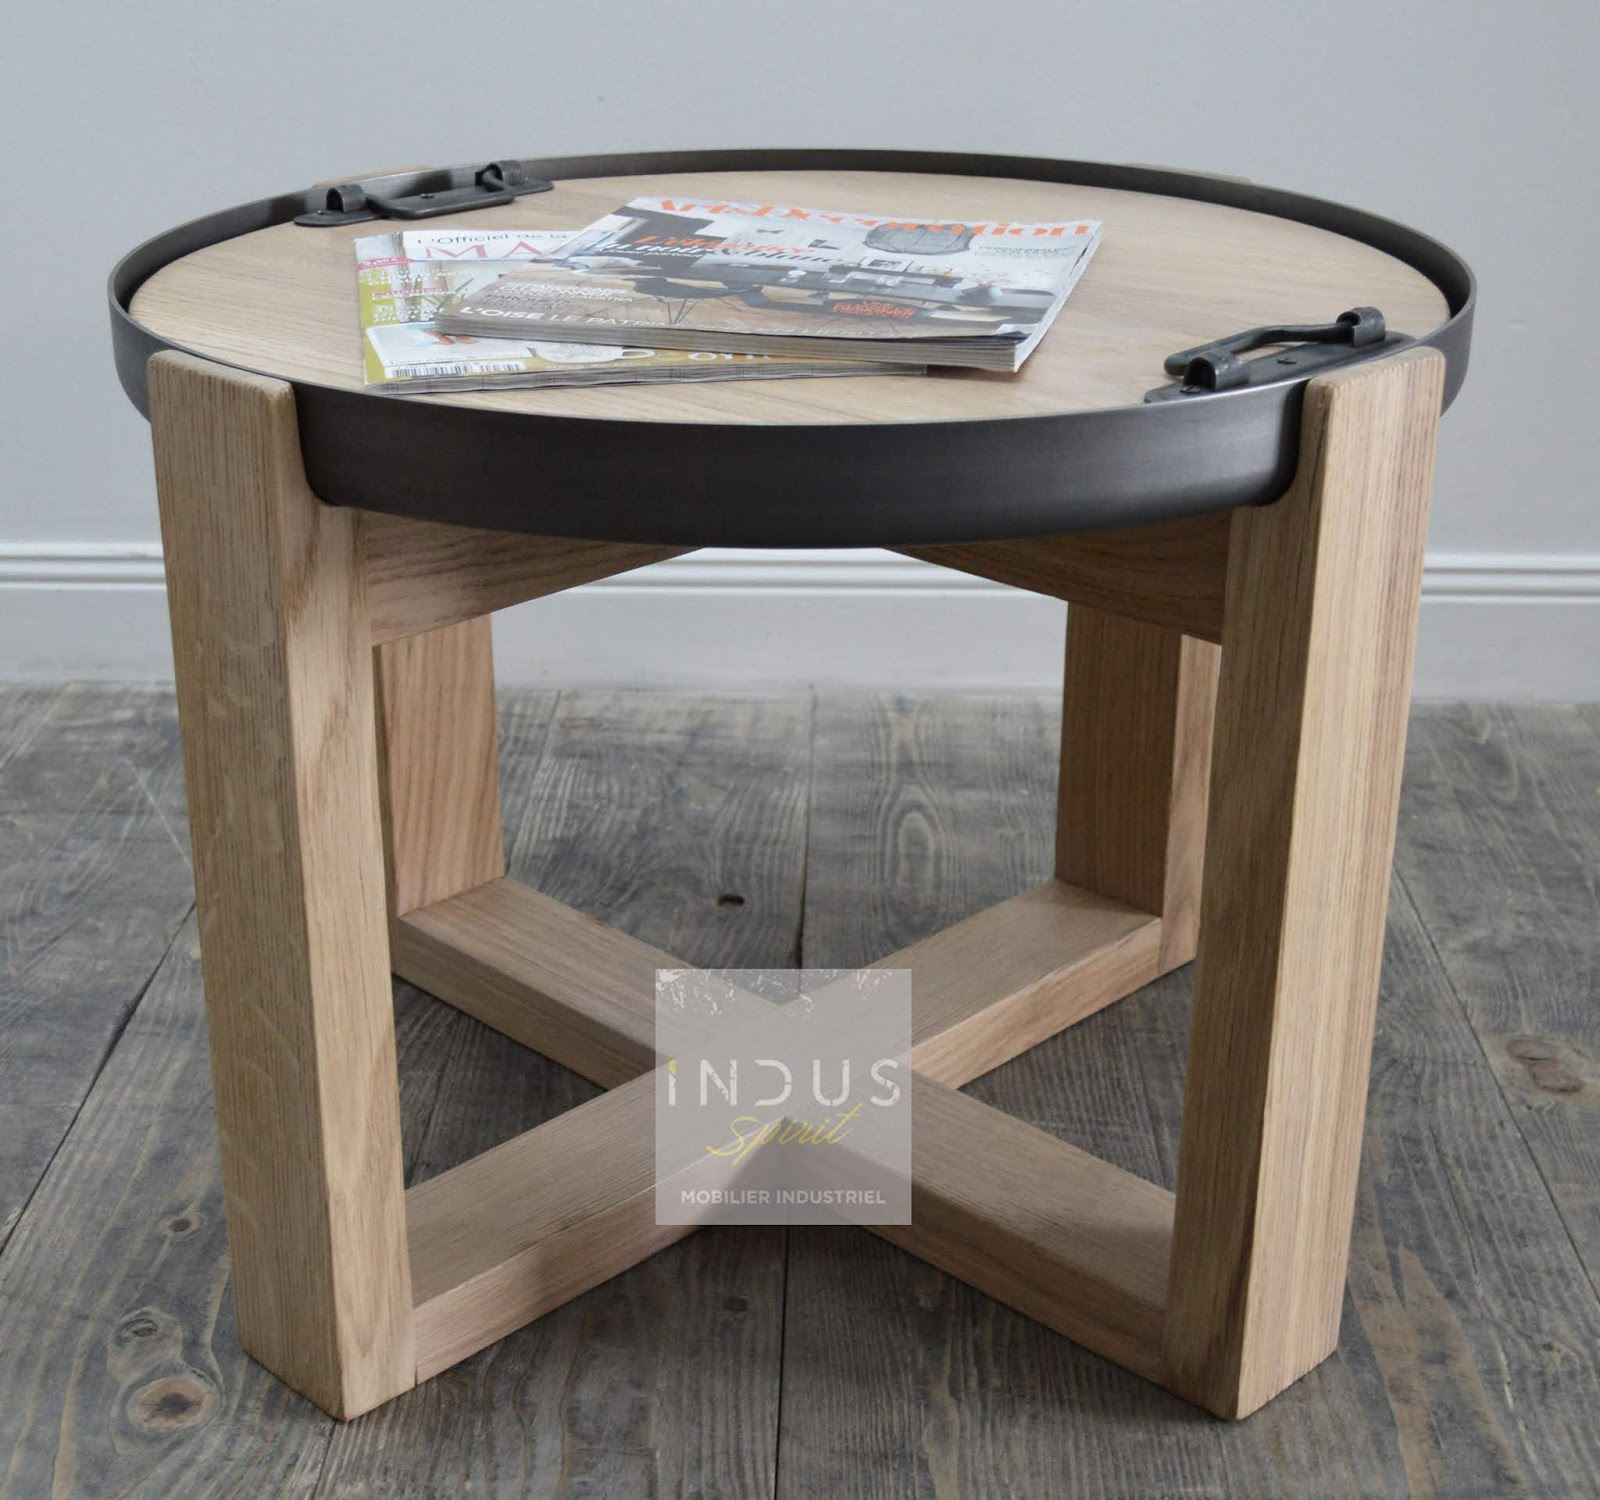 Table basse ronde style industriel scandinave Table basse ronde scandinave